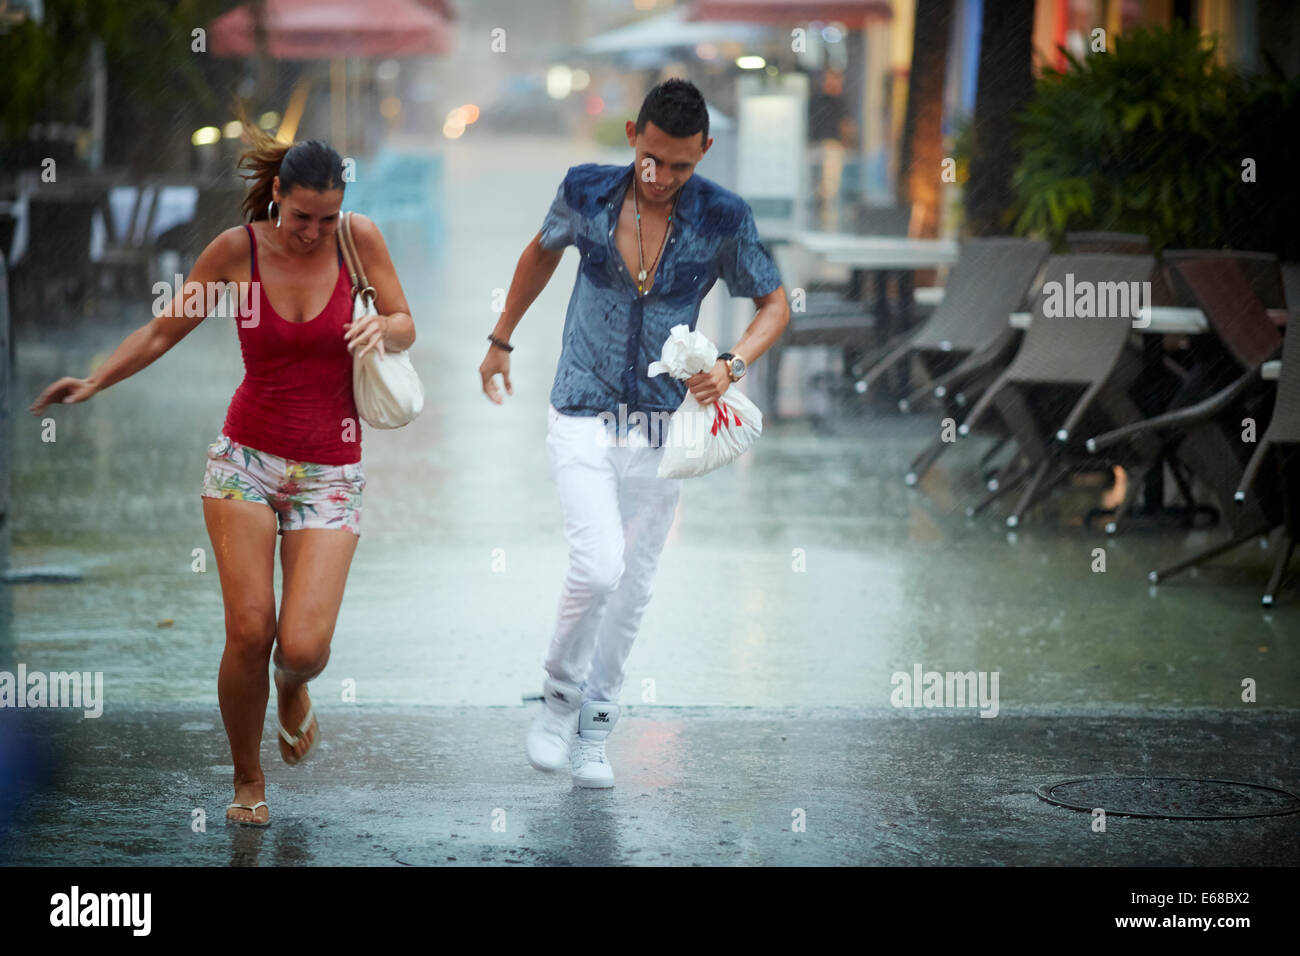 A picture boy girl couple run through the street in the pouring rain - Stock Image